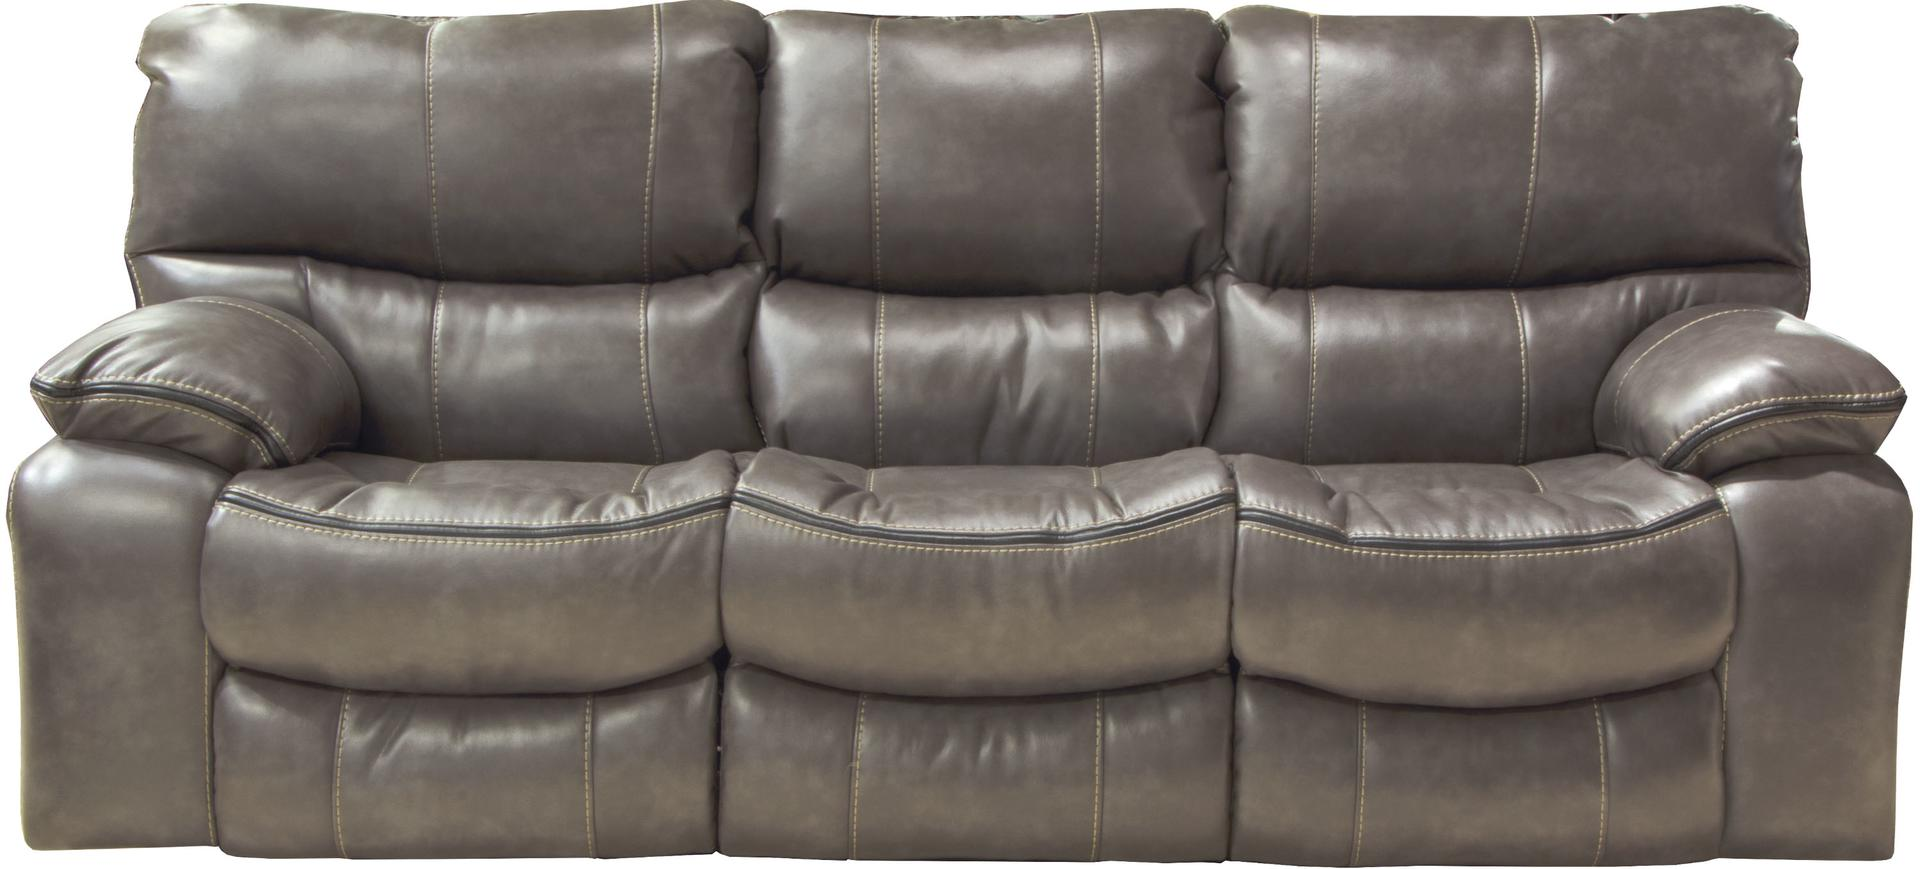 Catnapper Camden Gray Reclining Sofa And Loveseat My